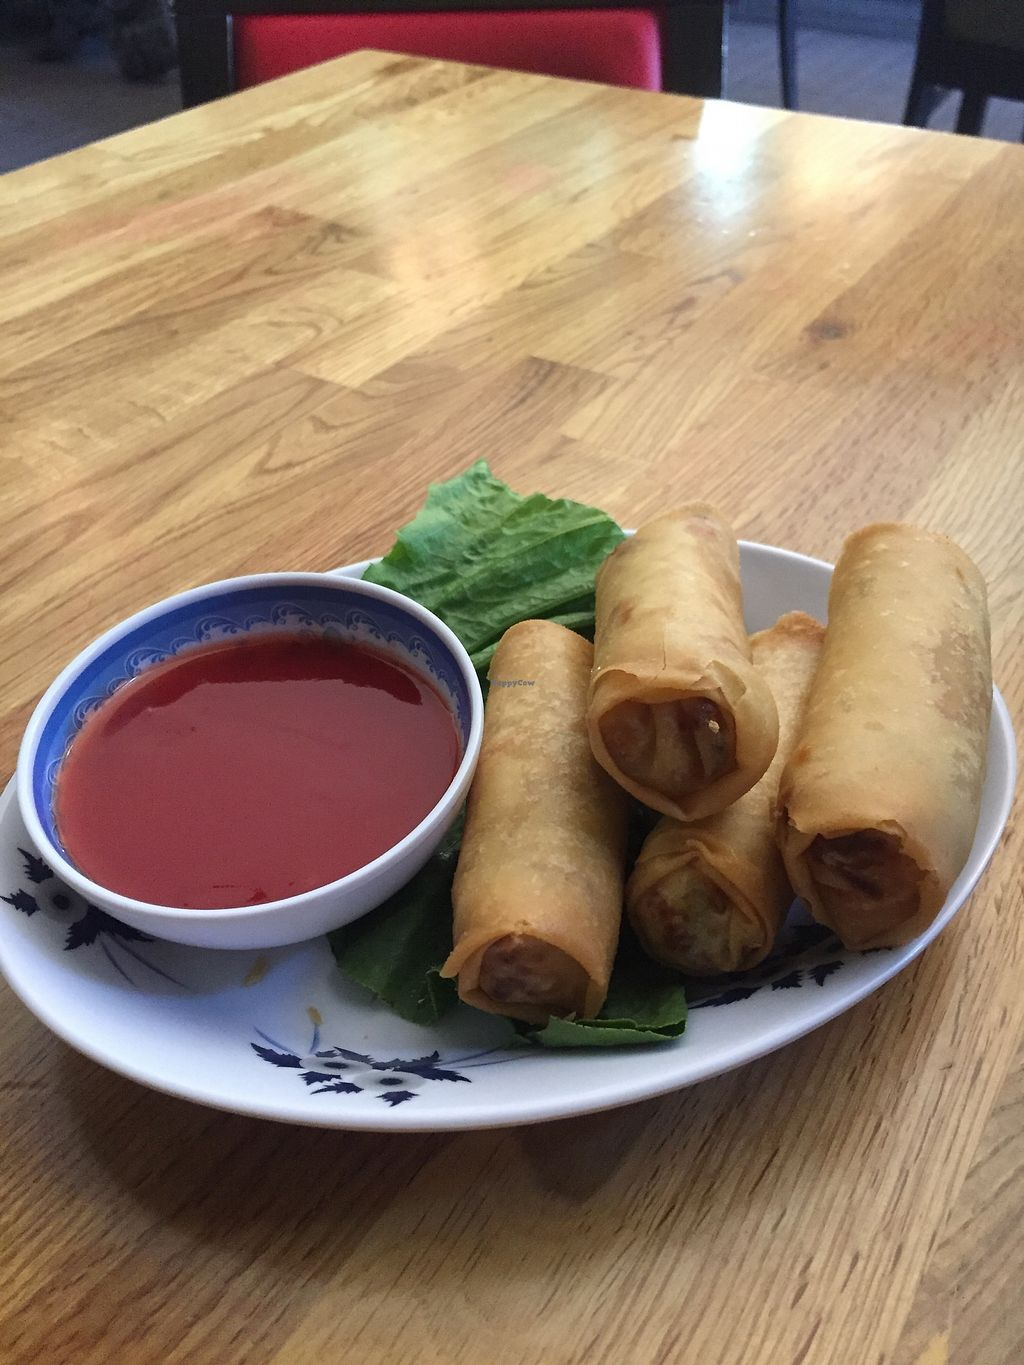 """Photo of Sipz Fusion Cafe - North Park  by <a href=""""/members/profile/KaitlynnGill"""">KaitlynnGill</a> <br/>Spring rolls  <br/> October 4, 2017  - <a href='/contact/abuse/image/29432/311718'>Report</a>"""